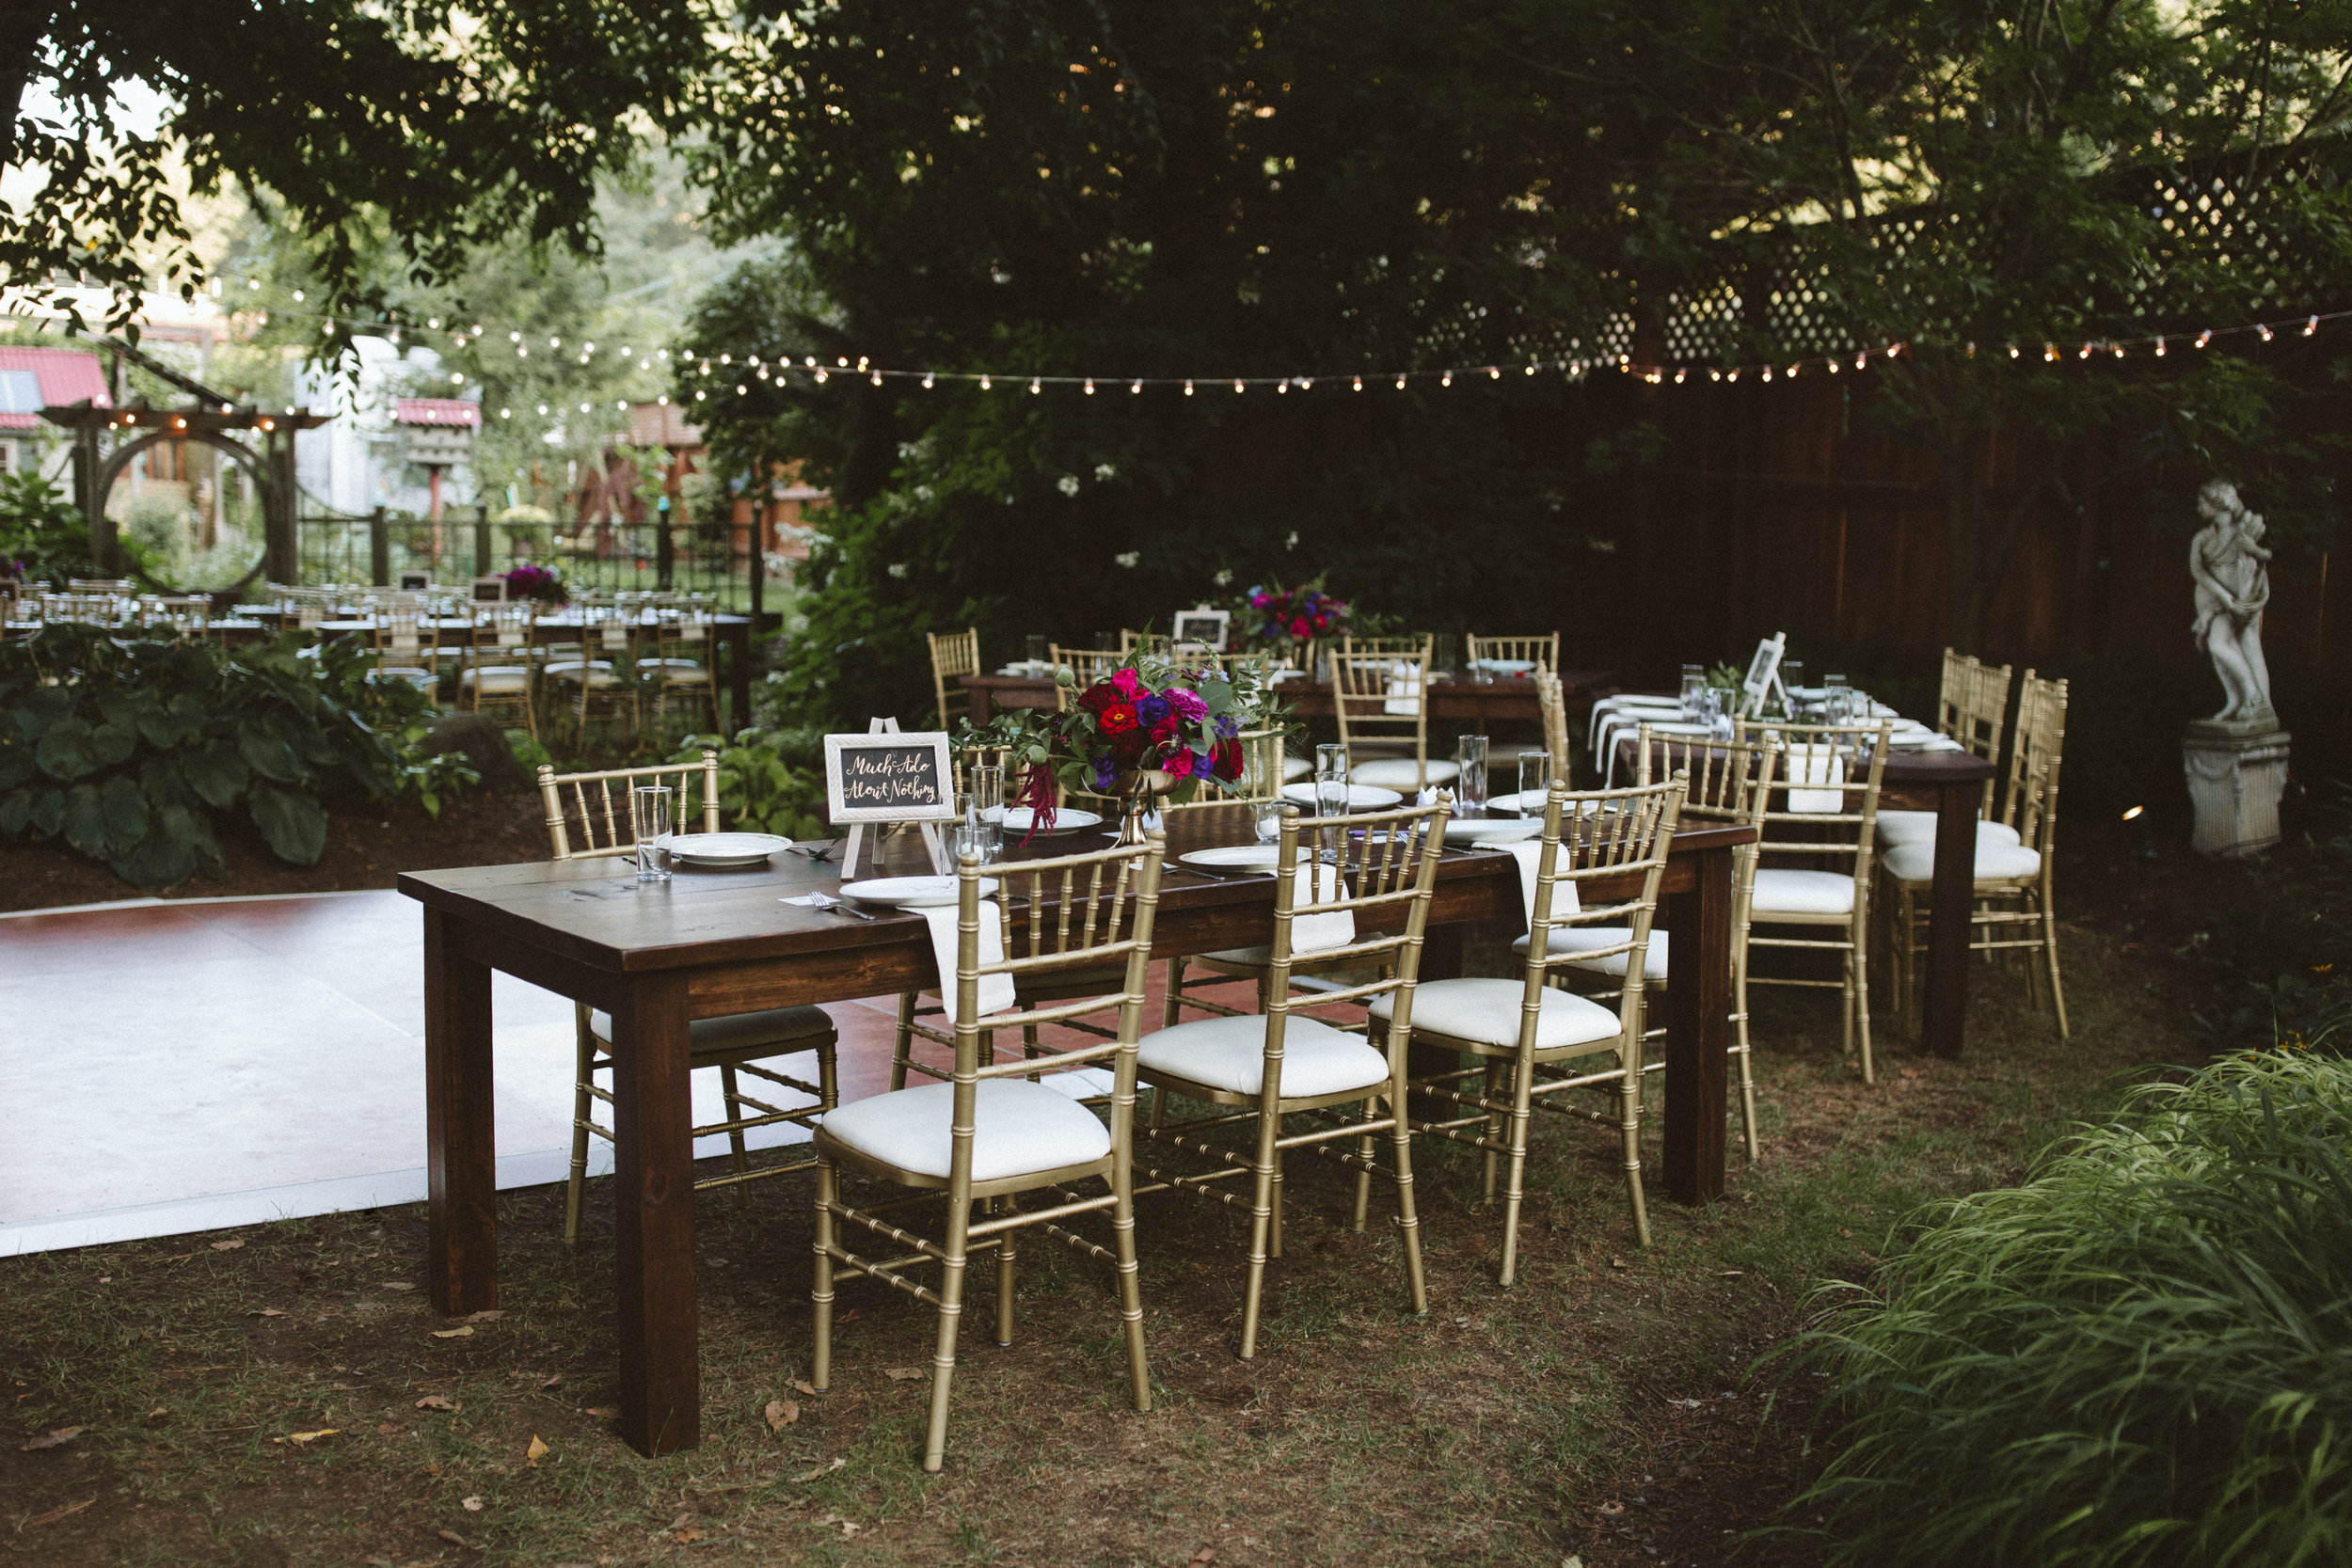 penn rustic rentals at choderwood - photo by hot metal studio